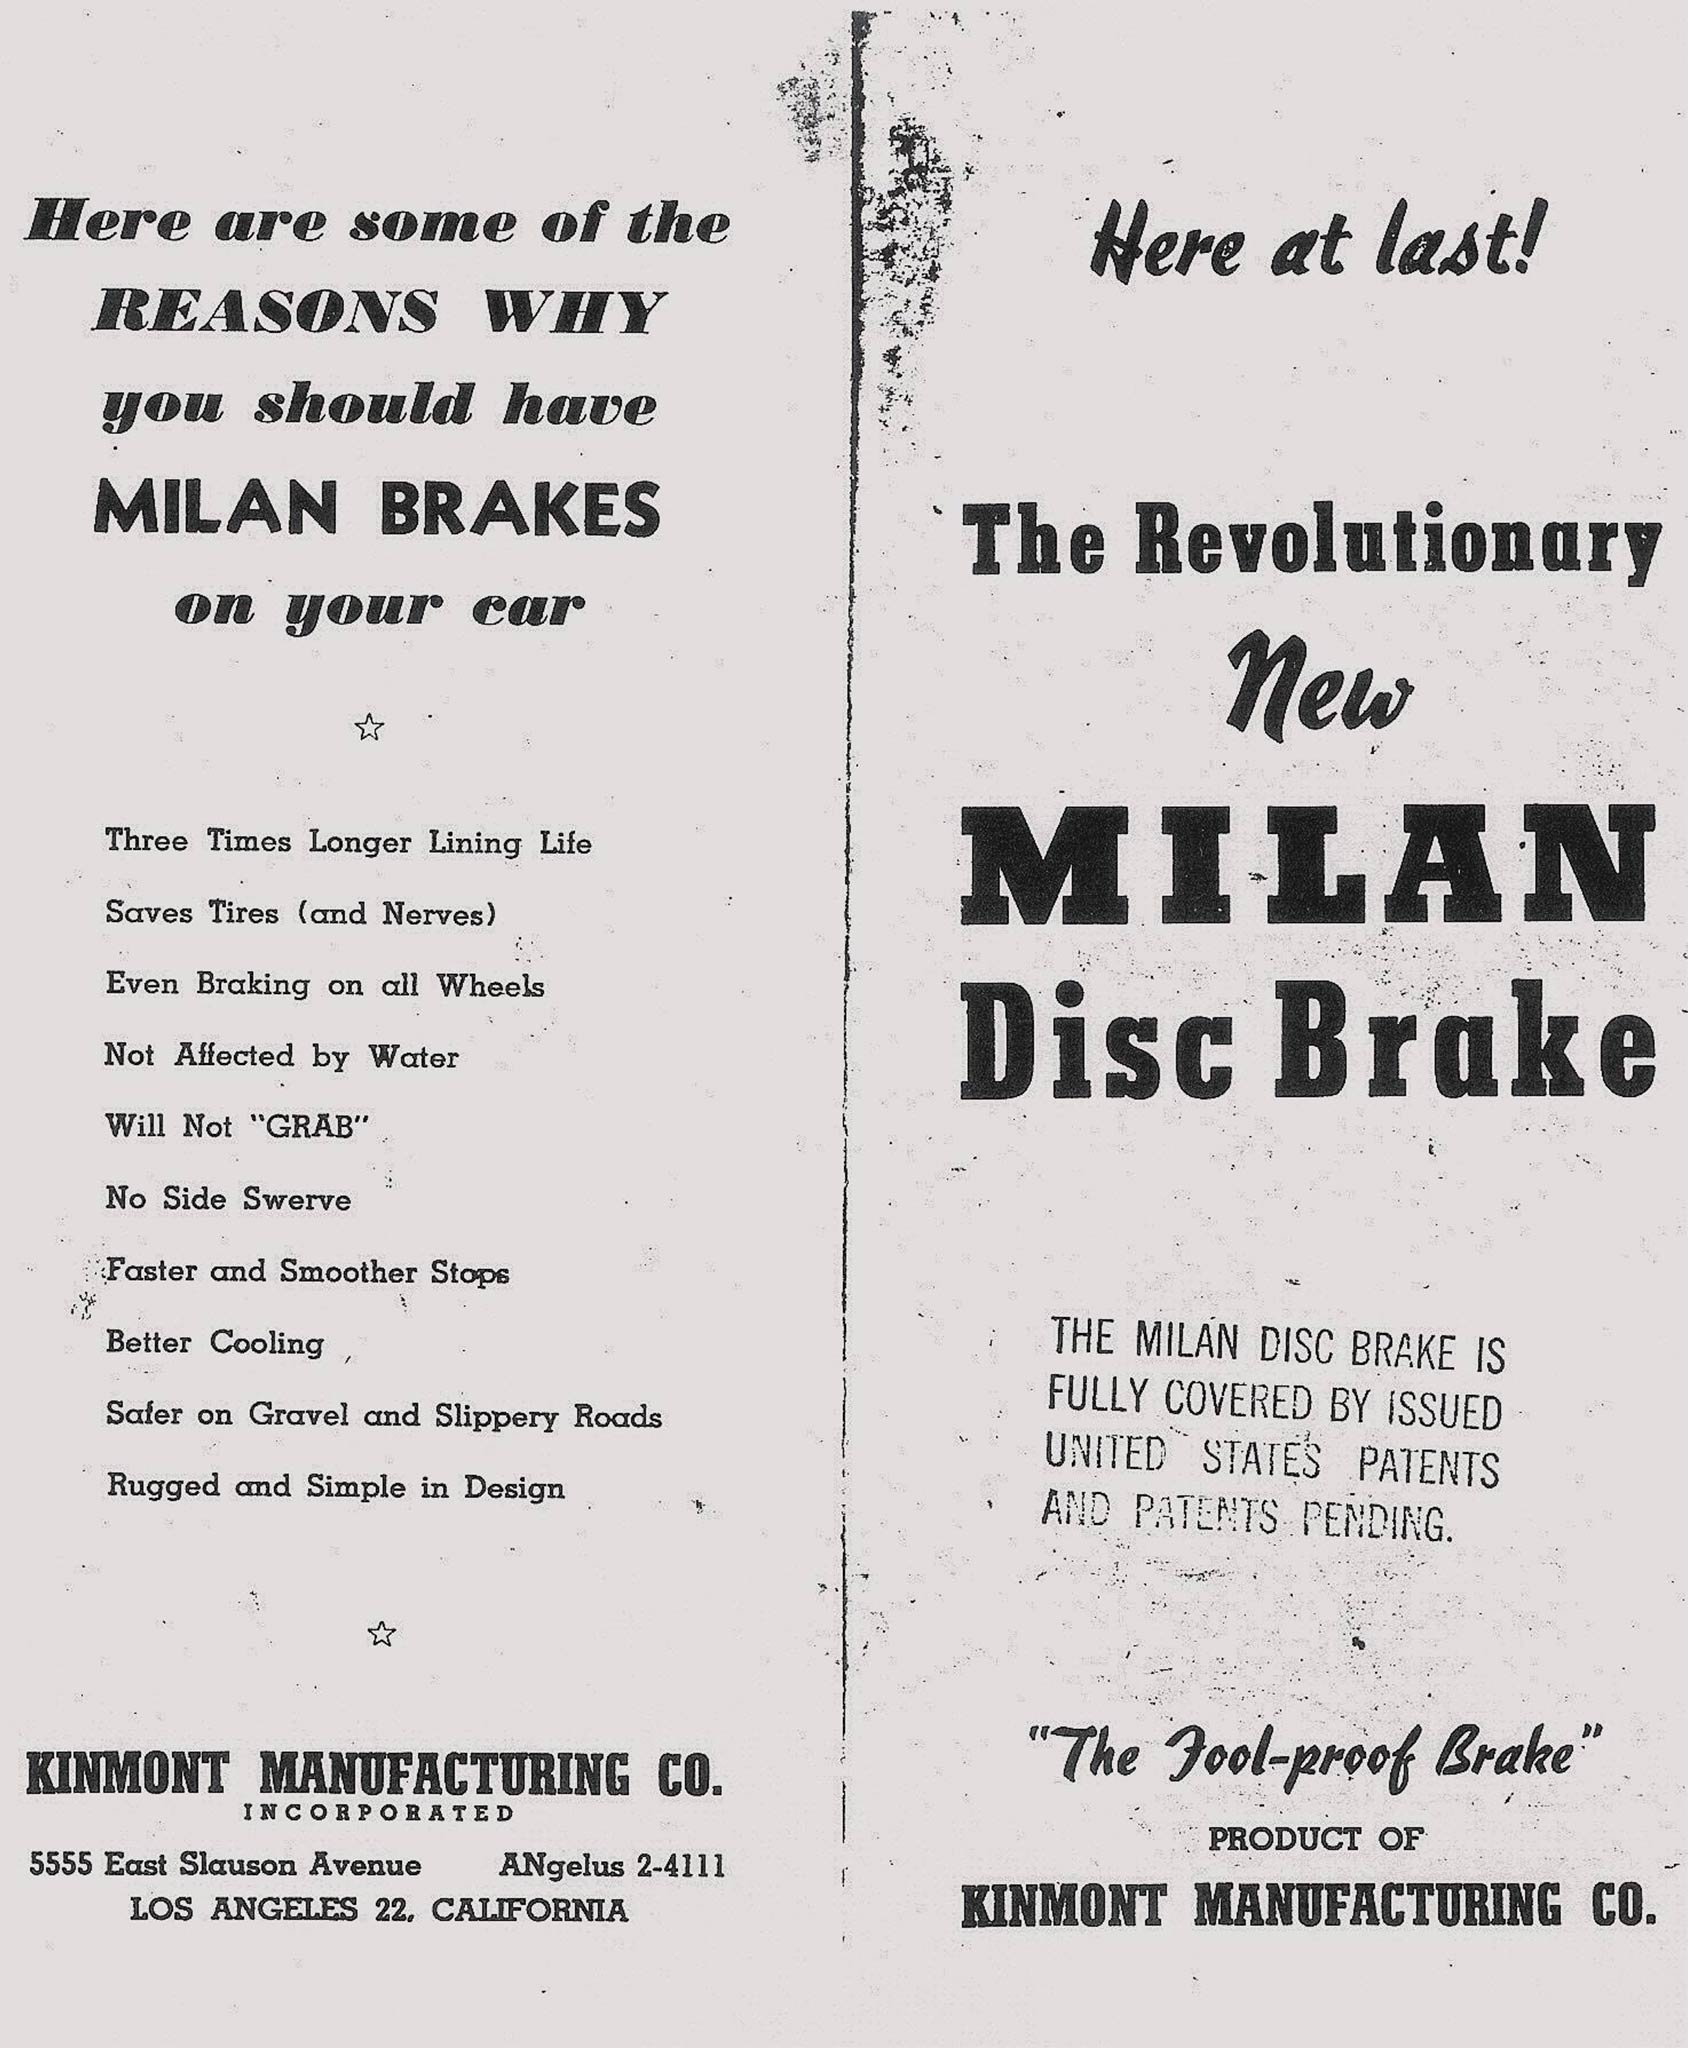 """Joseph Milan originally developed these unusual but effective disc brakes. When the Kinmont Manufacturing Company in Los Angeles purchased the rights to manufacture them as an aftermarket item, they became Kinmont """"Safe Stop"""" Disc brakes, """"Mfd. Under Milan Patents.""""  They worked better than conventional drums of the era, but failed to catch on."""